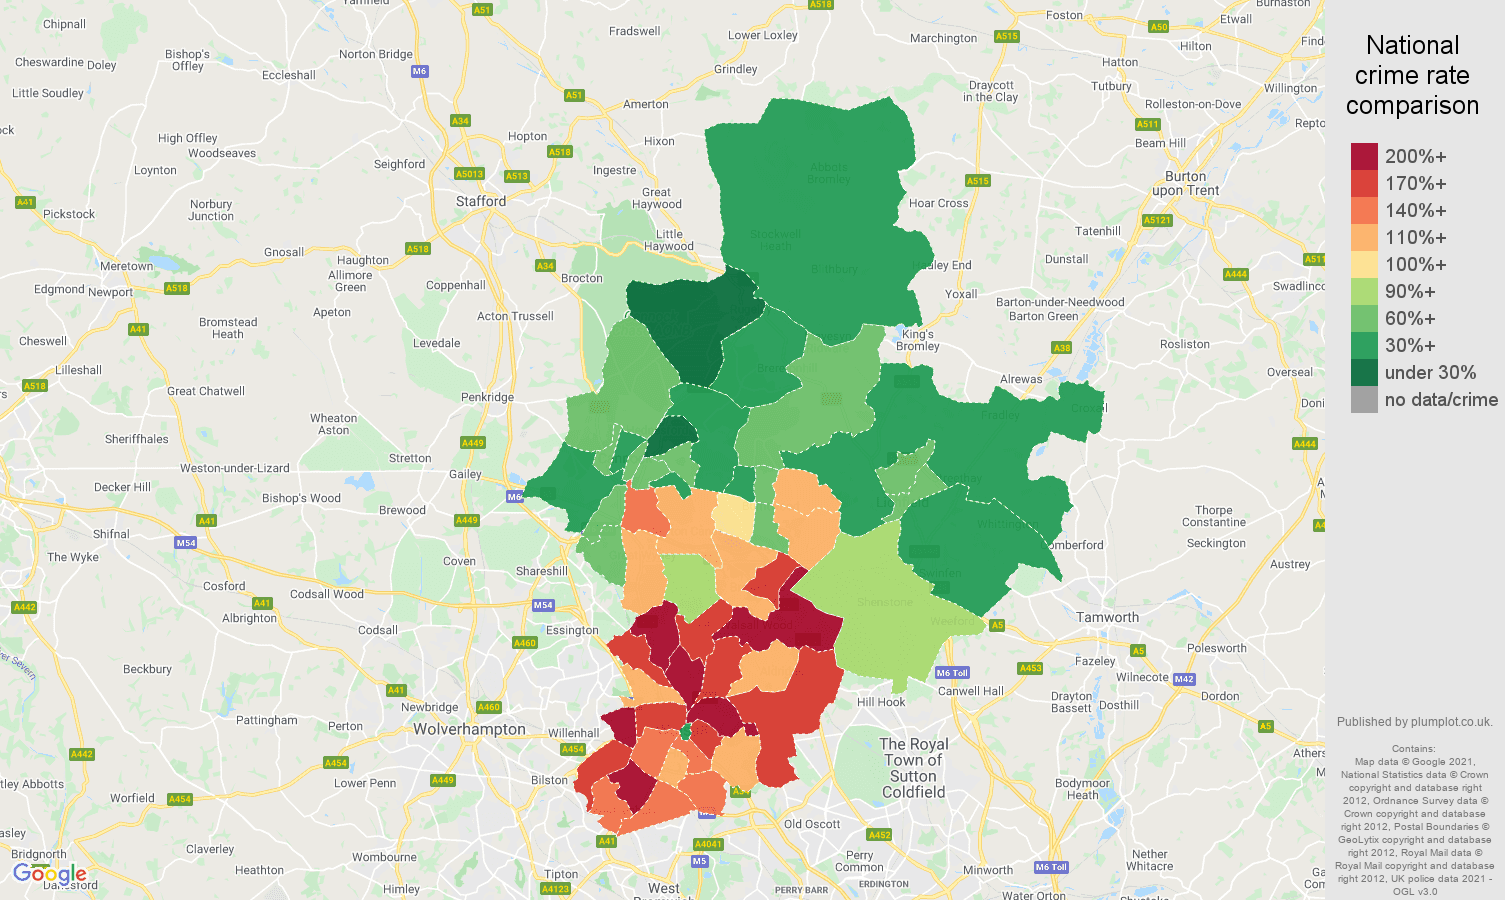 Walsall vehicle crime rate comparison map